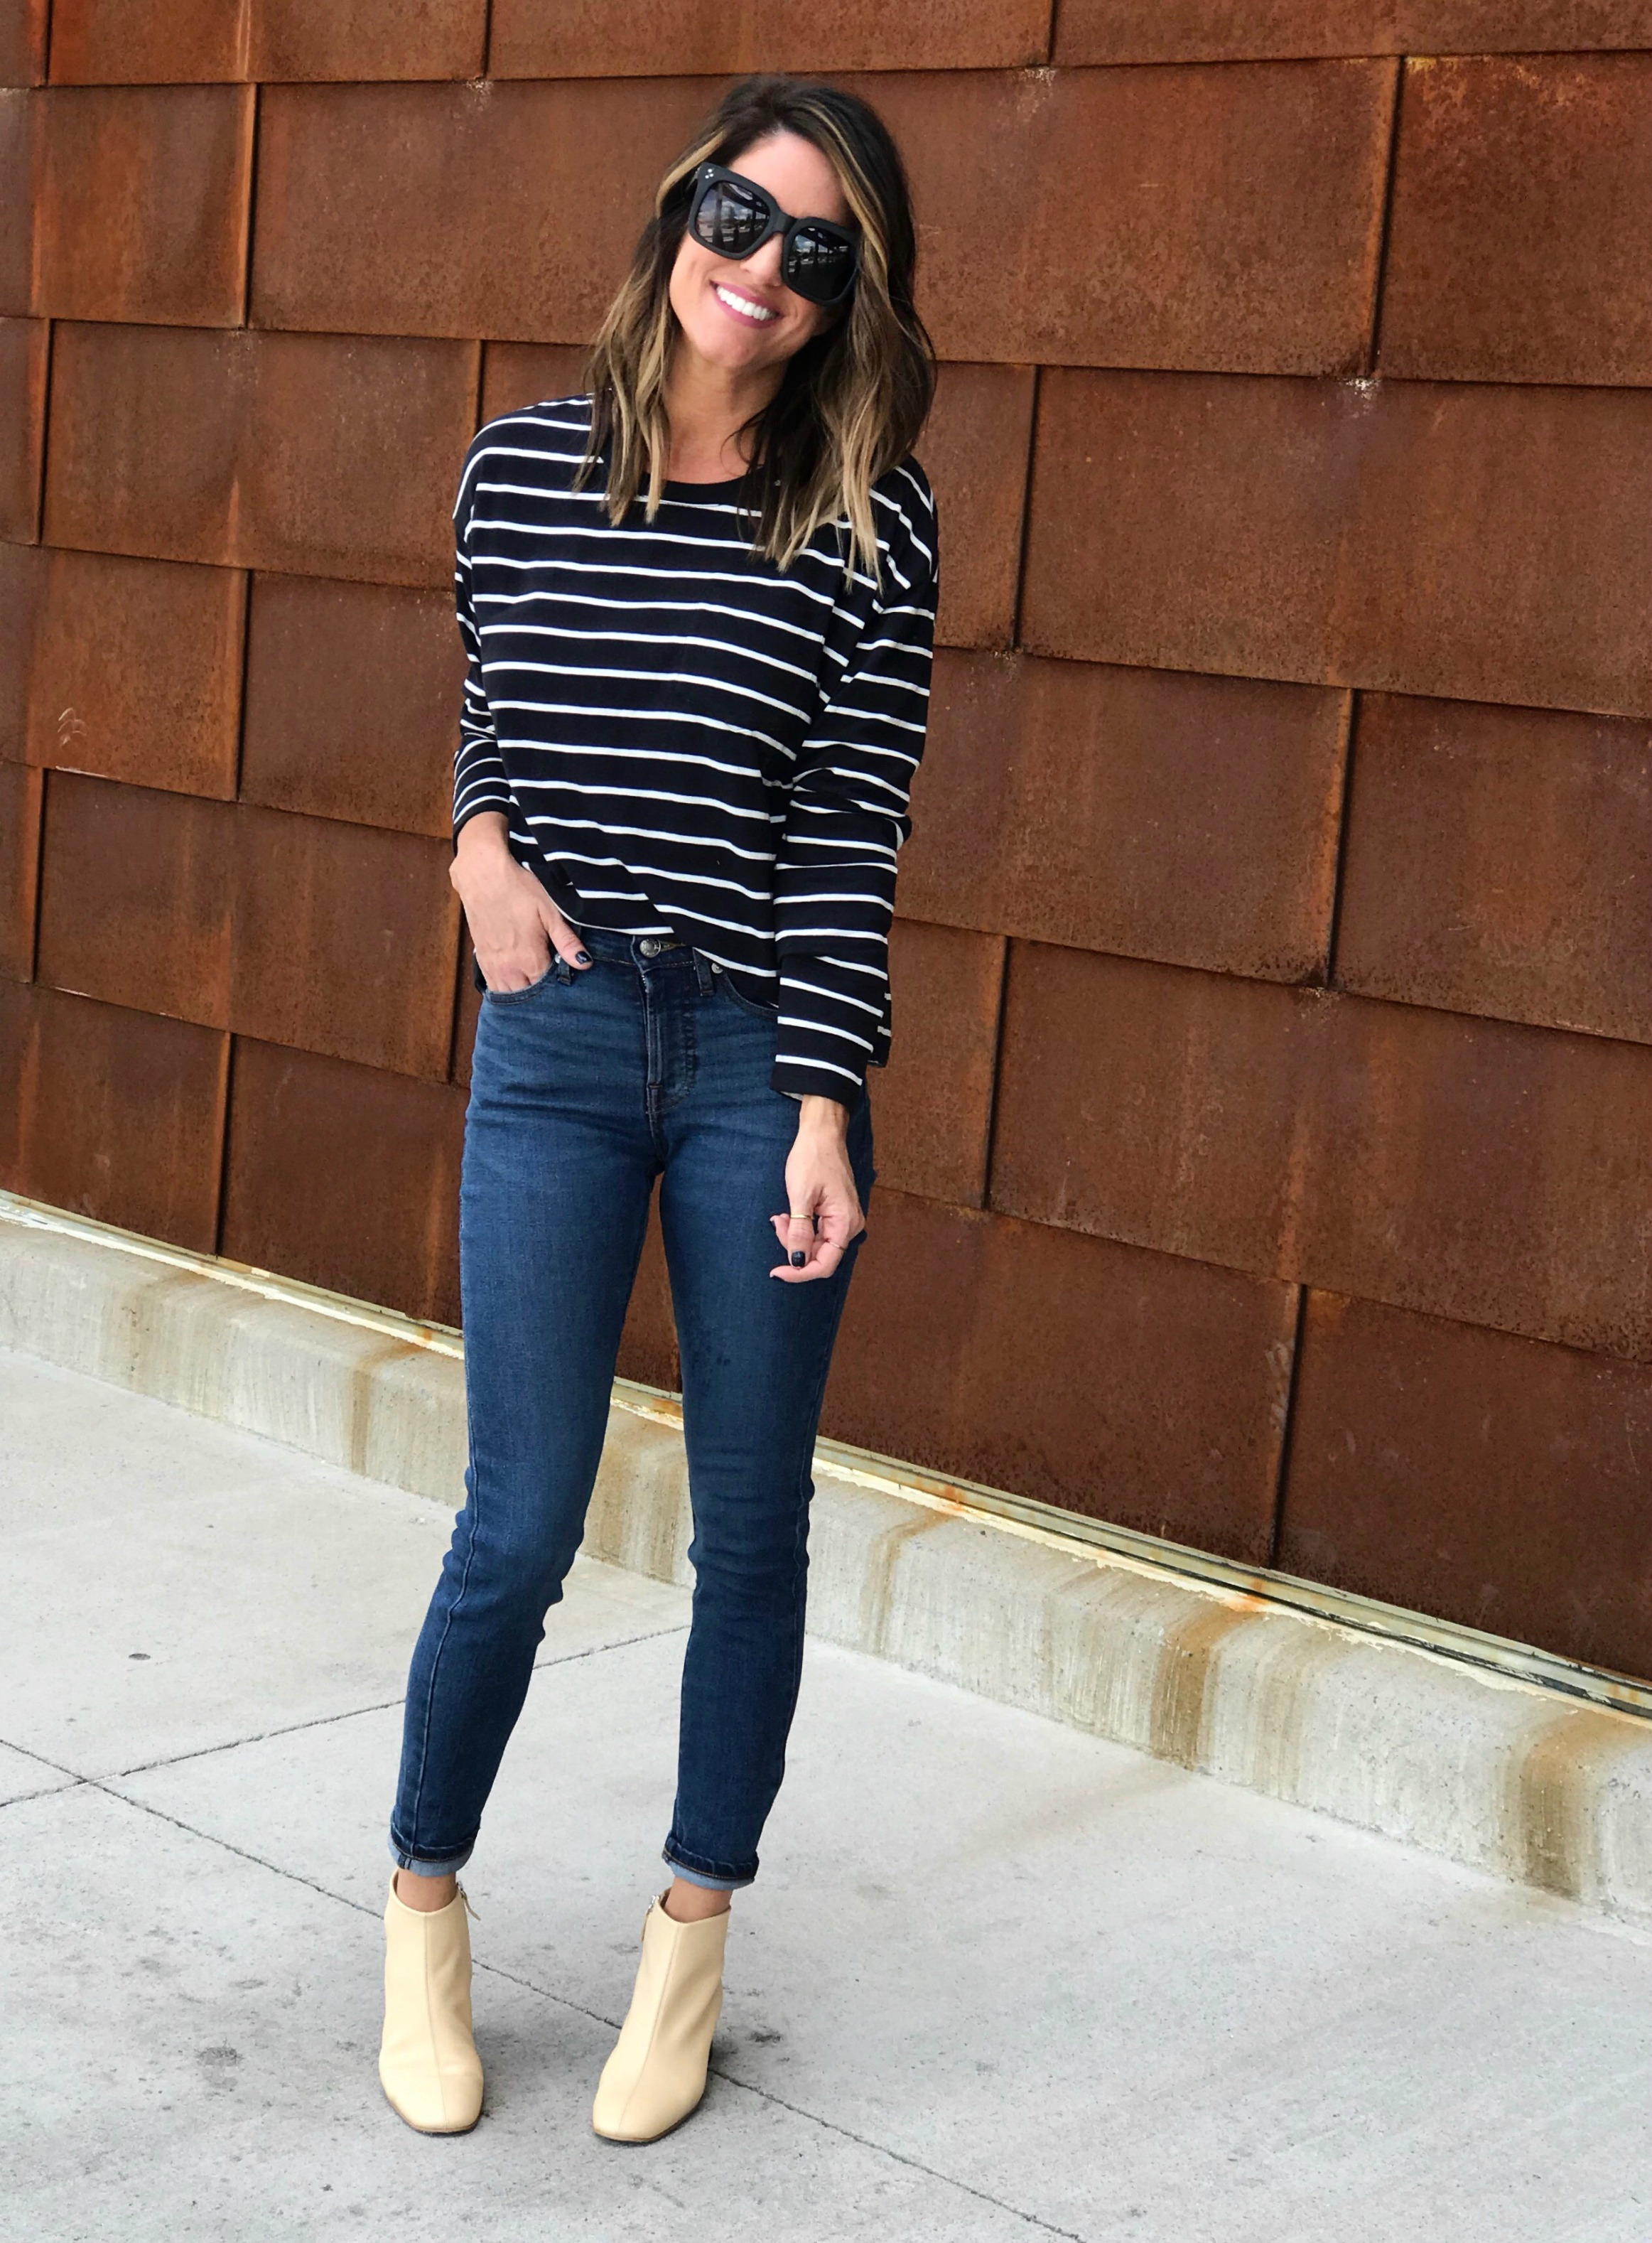 ce97c0babc The jeans I'm wearing are the Authentic Stretch Mid-Rise Skinny Ankle Jeans.  They are INSANELY comfortable! I am wearing the dark wash, but if you don't  ...